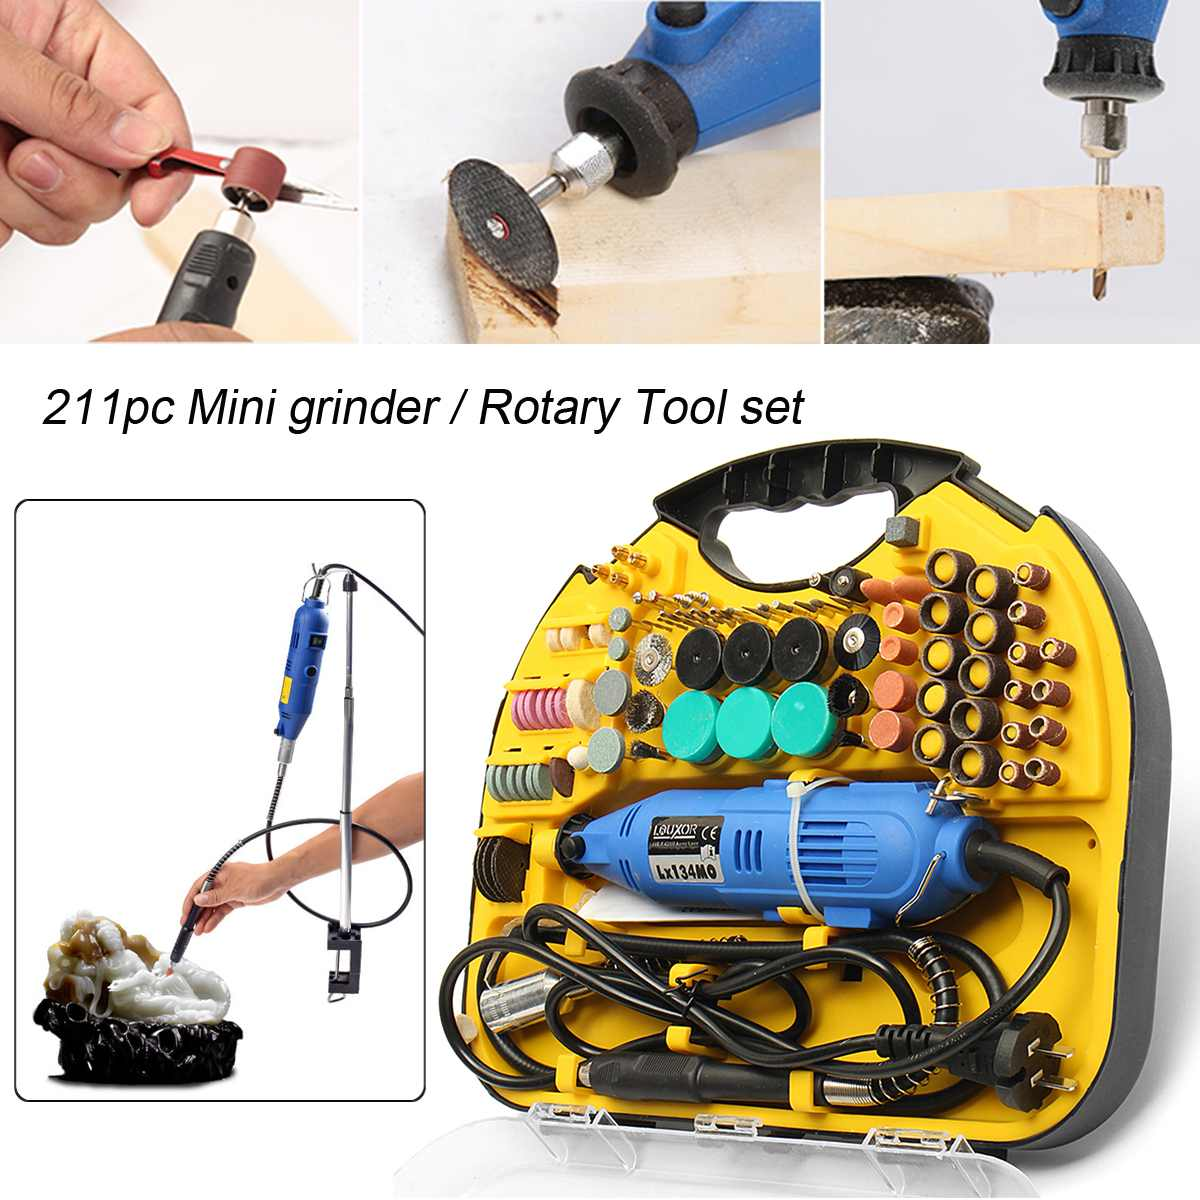 211pcs Rotary Tool Set Electric Mini Drill Grinder Engraver Sander Polisher Hobby Craft For Dremel Rotary Tools Power Tools211pcs Rotary Tool Set Electric Mini Drill Grinder Engraver Sander Polisher Hobby Craft For Dremel Rotary Tools Power Tools